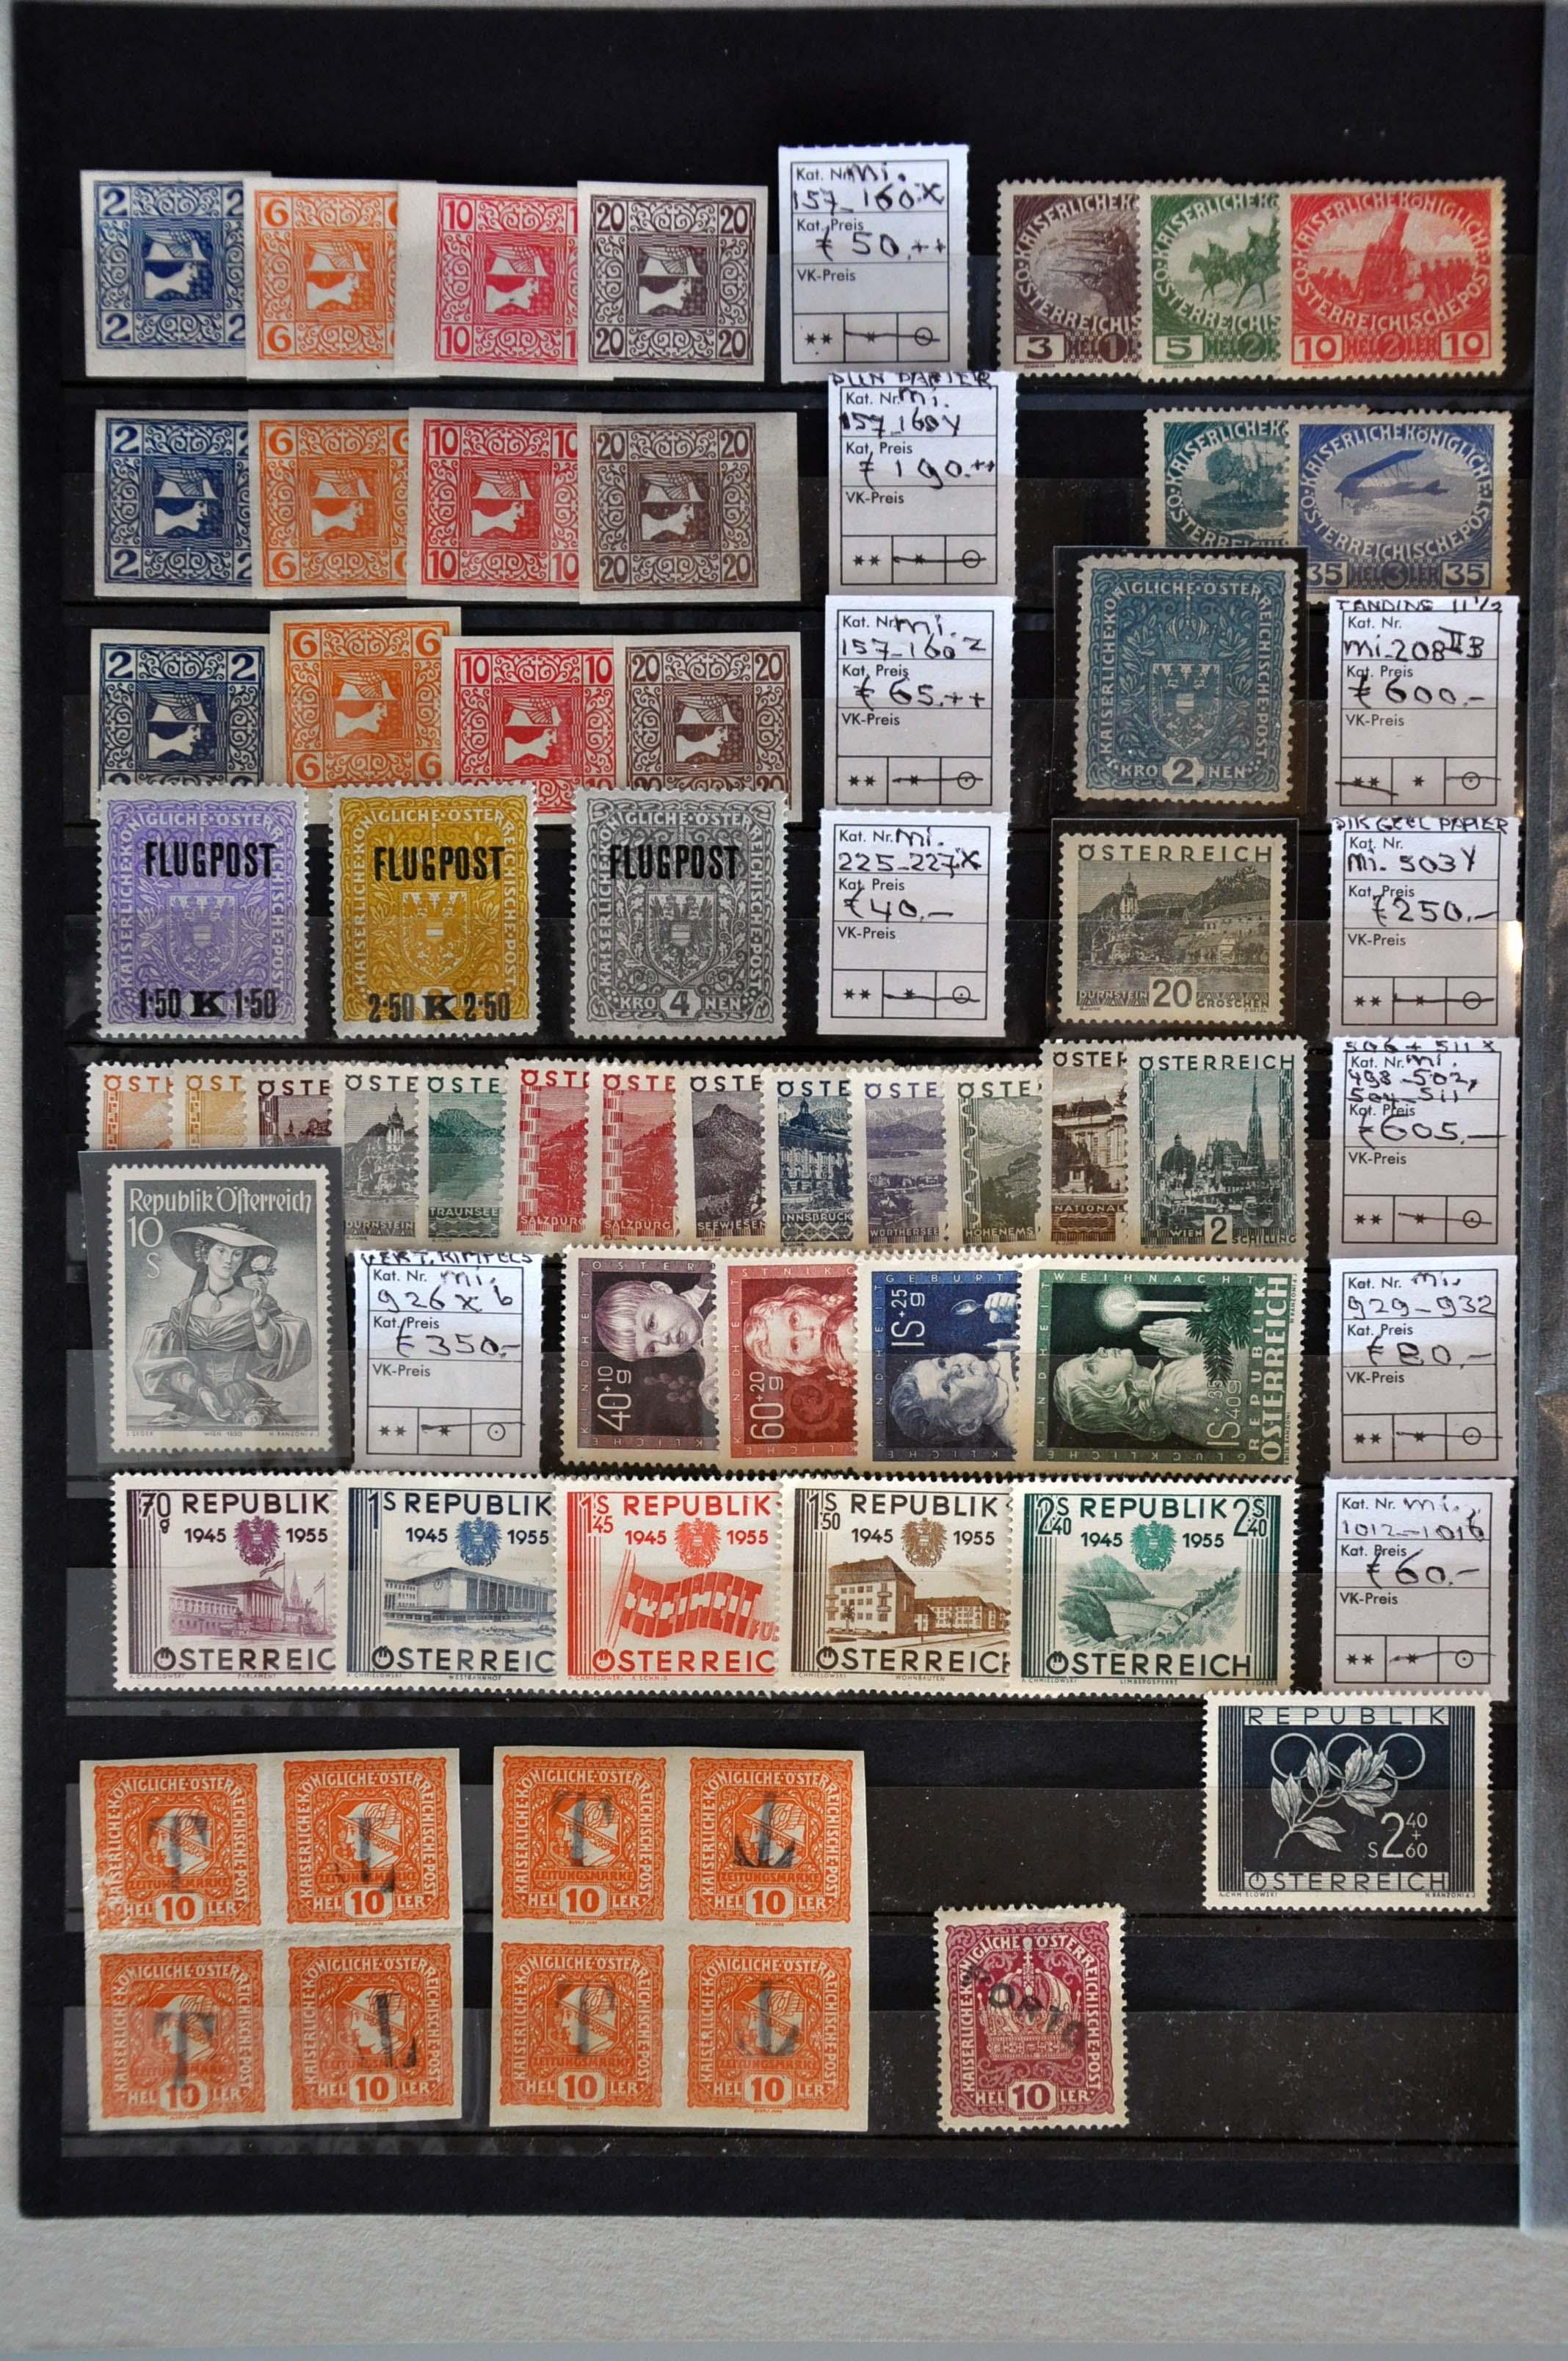 Lot 579 - Austria and former territories Austria -  Corinphila Veilingen Auction 245-246 Day 2 - Foreign countries - Collections and lots, Foreign countries - Boxes and literature